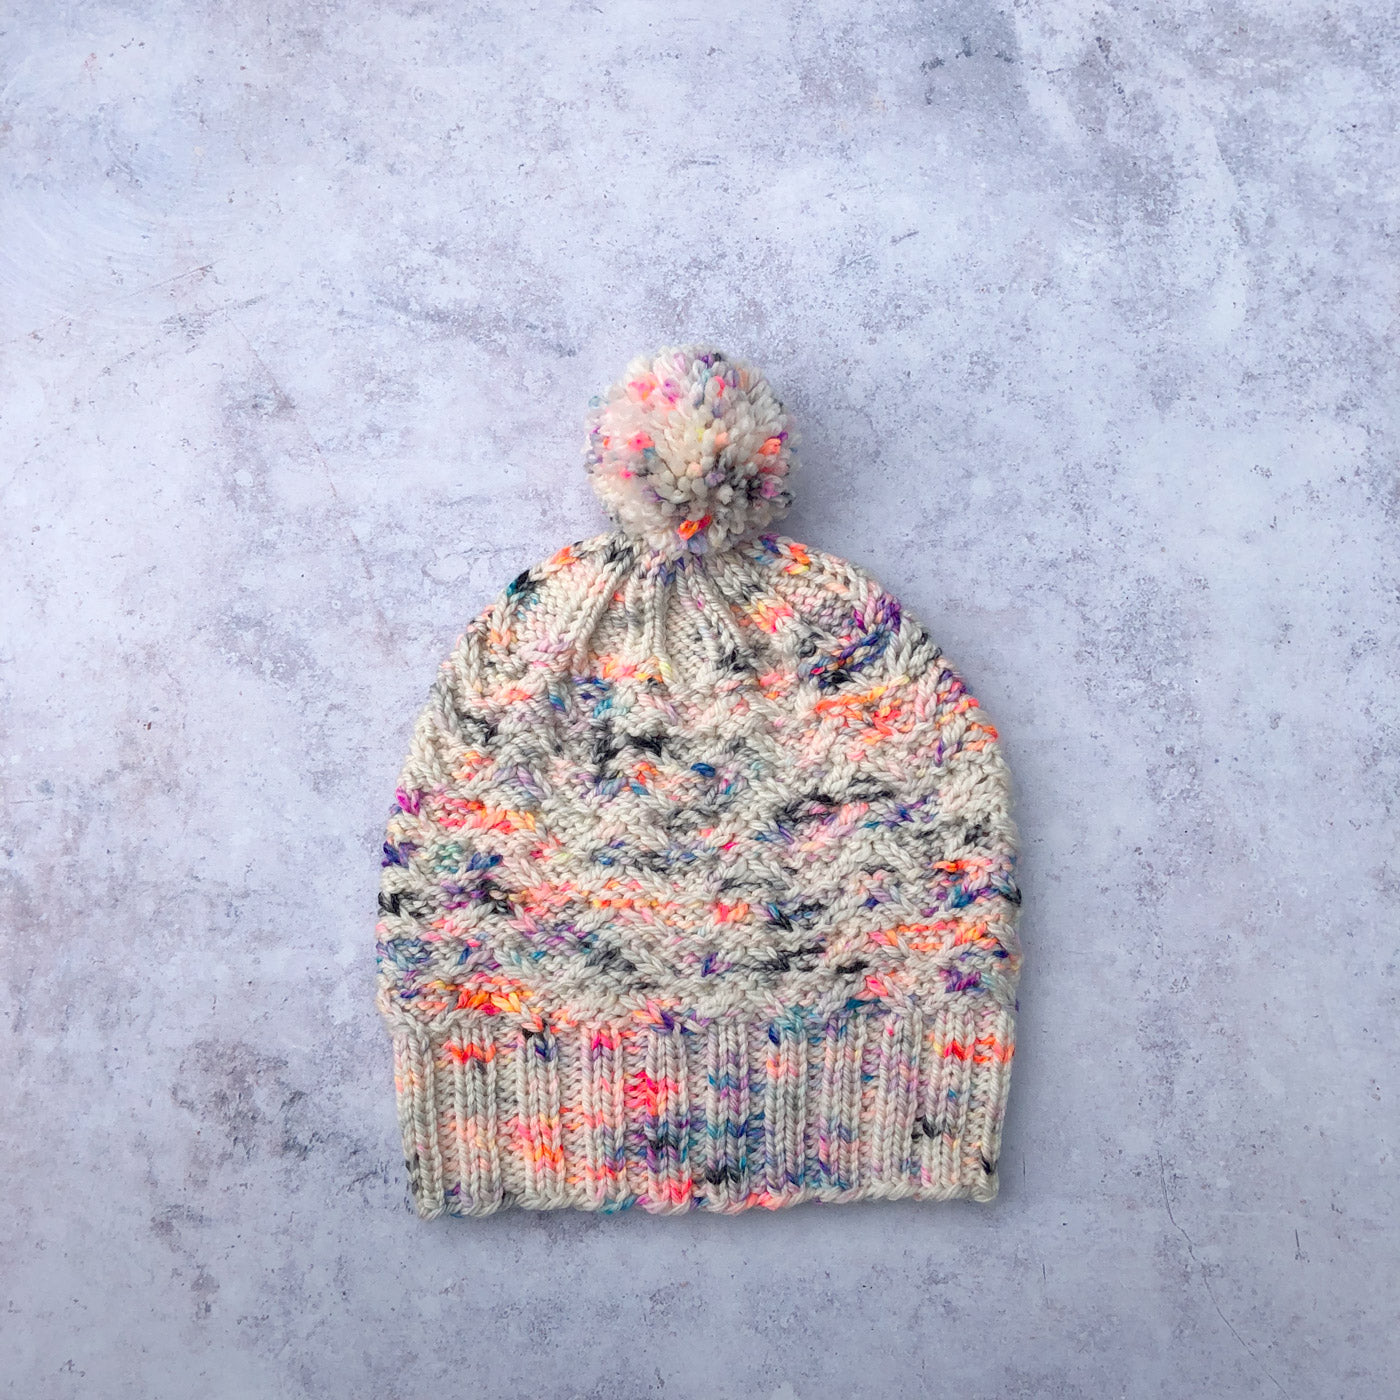 Handknit hat laying flat, it has textured stitches in white yarn speckled with coral, purple and blue. There is a pom-pom on top made from the same yarn.